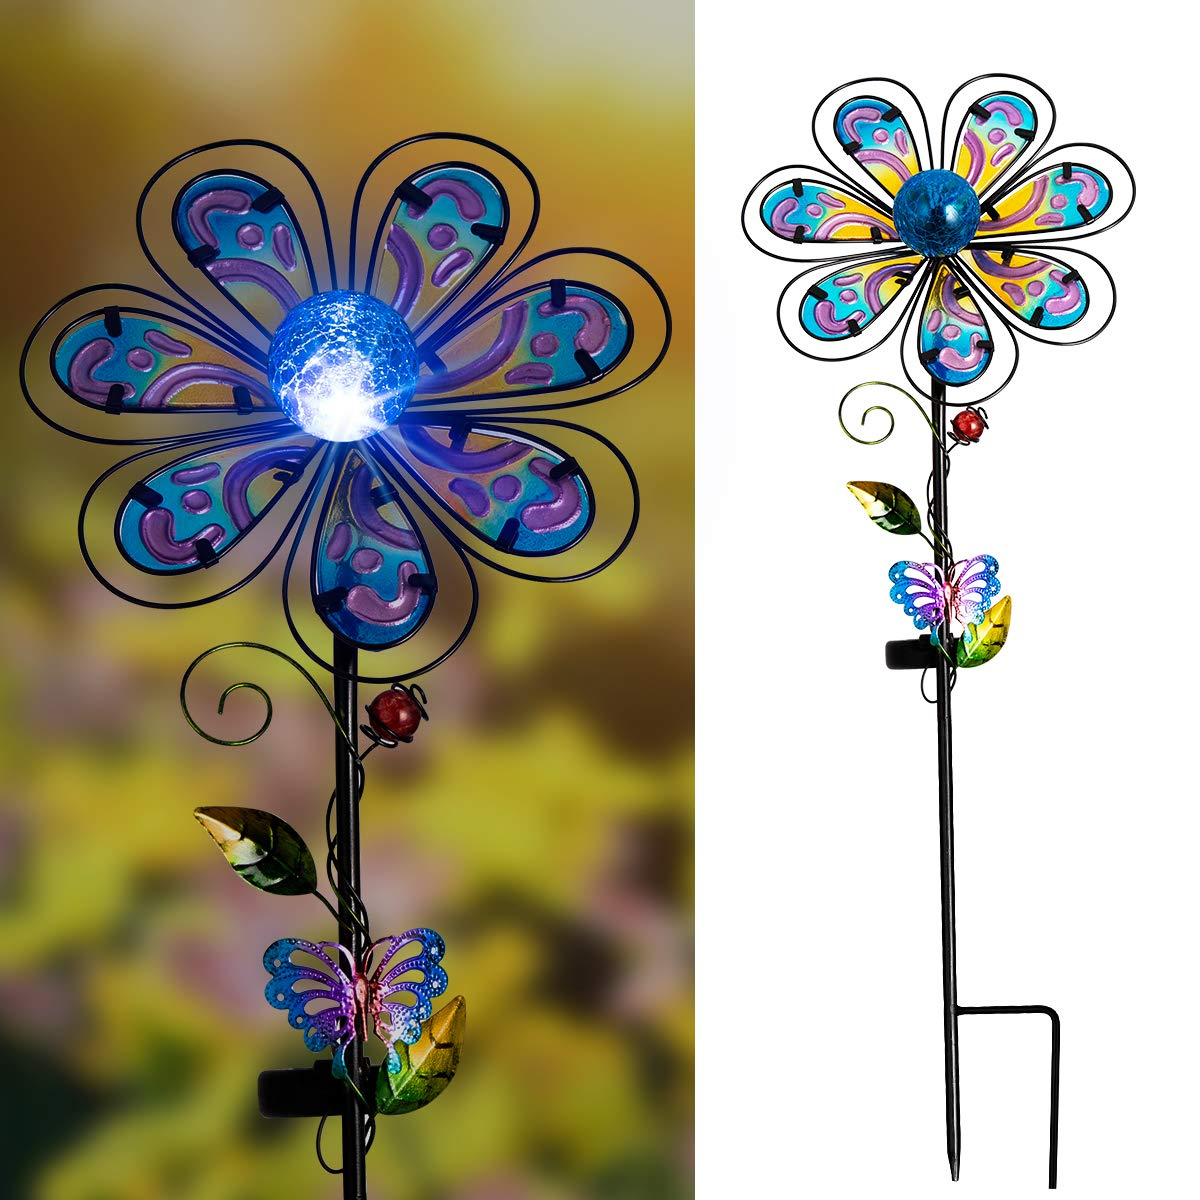 Solpex Solar Garden Stake Outdoor with Cracked Glass LED Light Colorful Mental Coat Flower for Patio, Lawn and Yard Art Décor